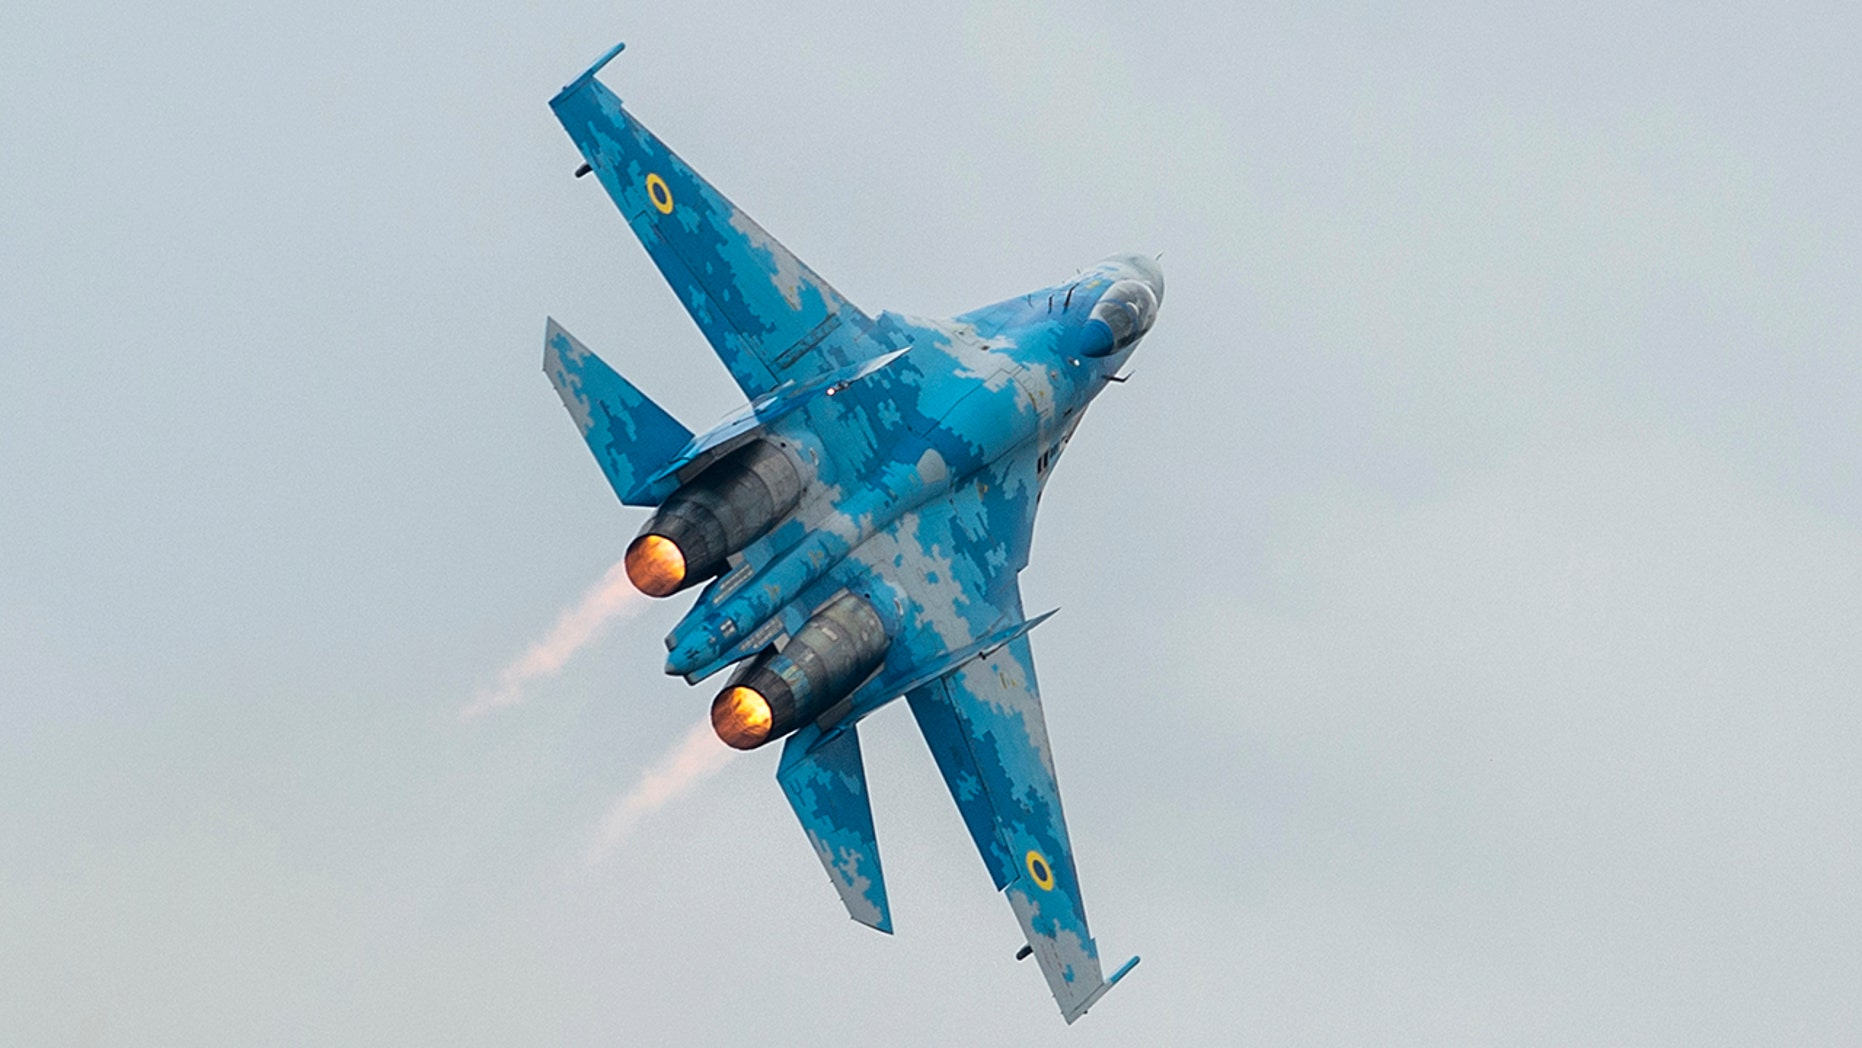 Two Pilots Die In Ukrainian Fighter Jet Crash, U.S. Pilot 'Involved'